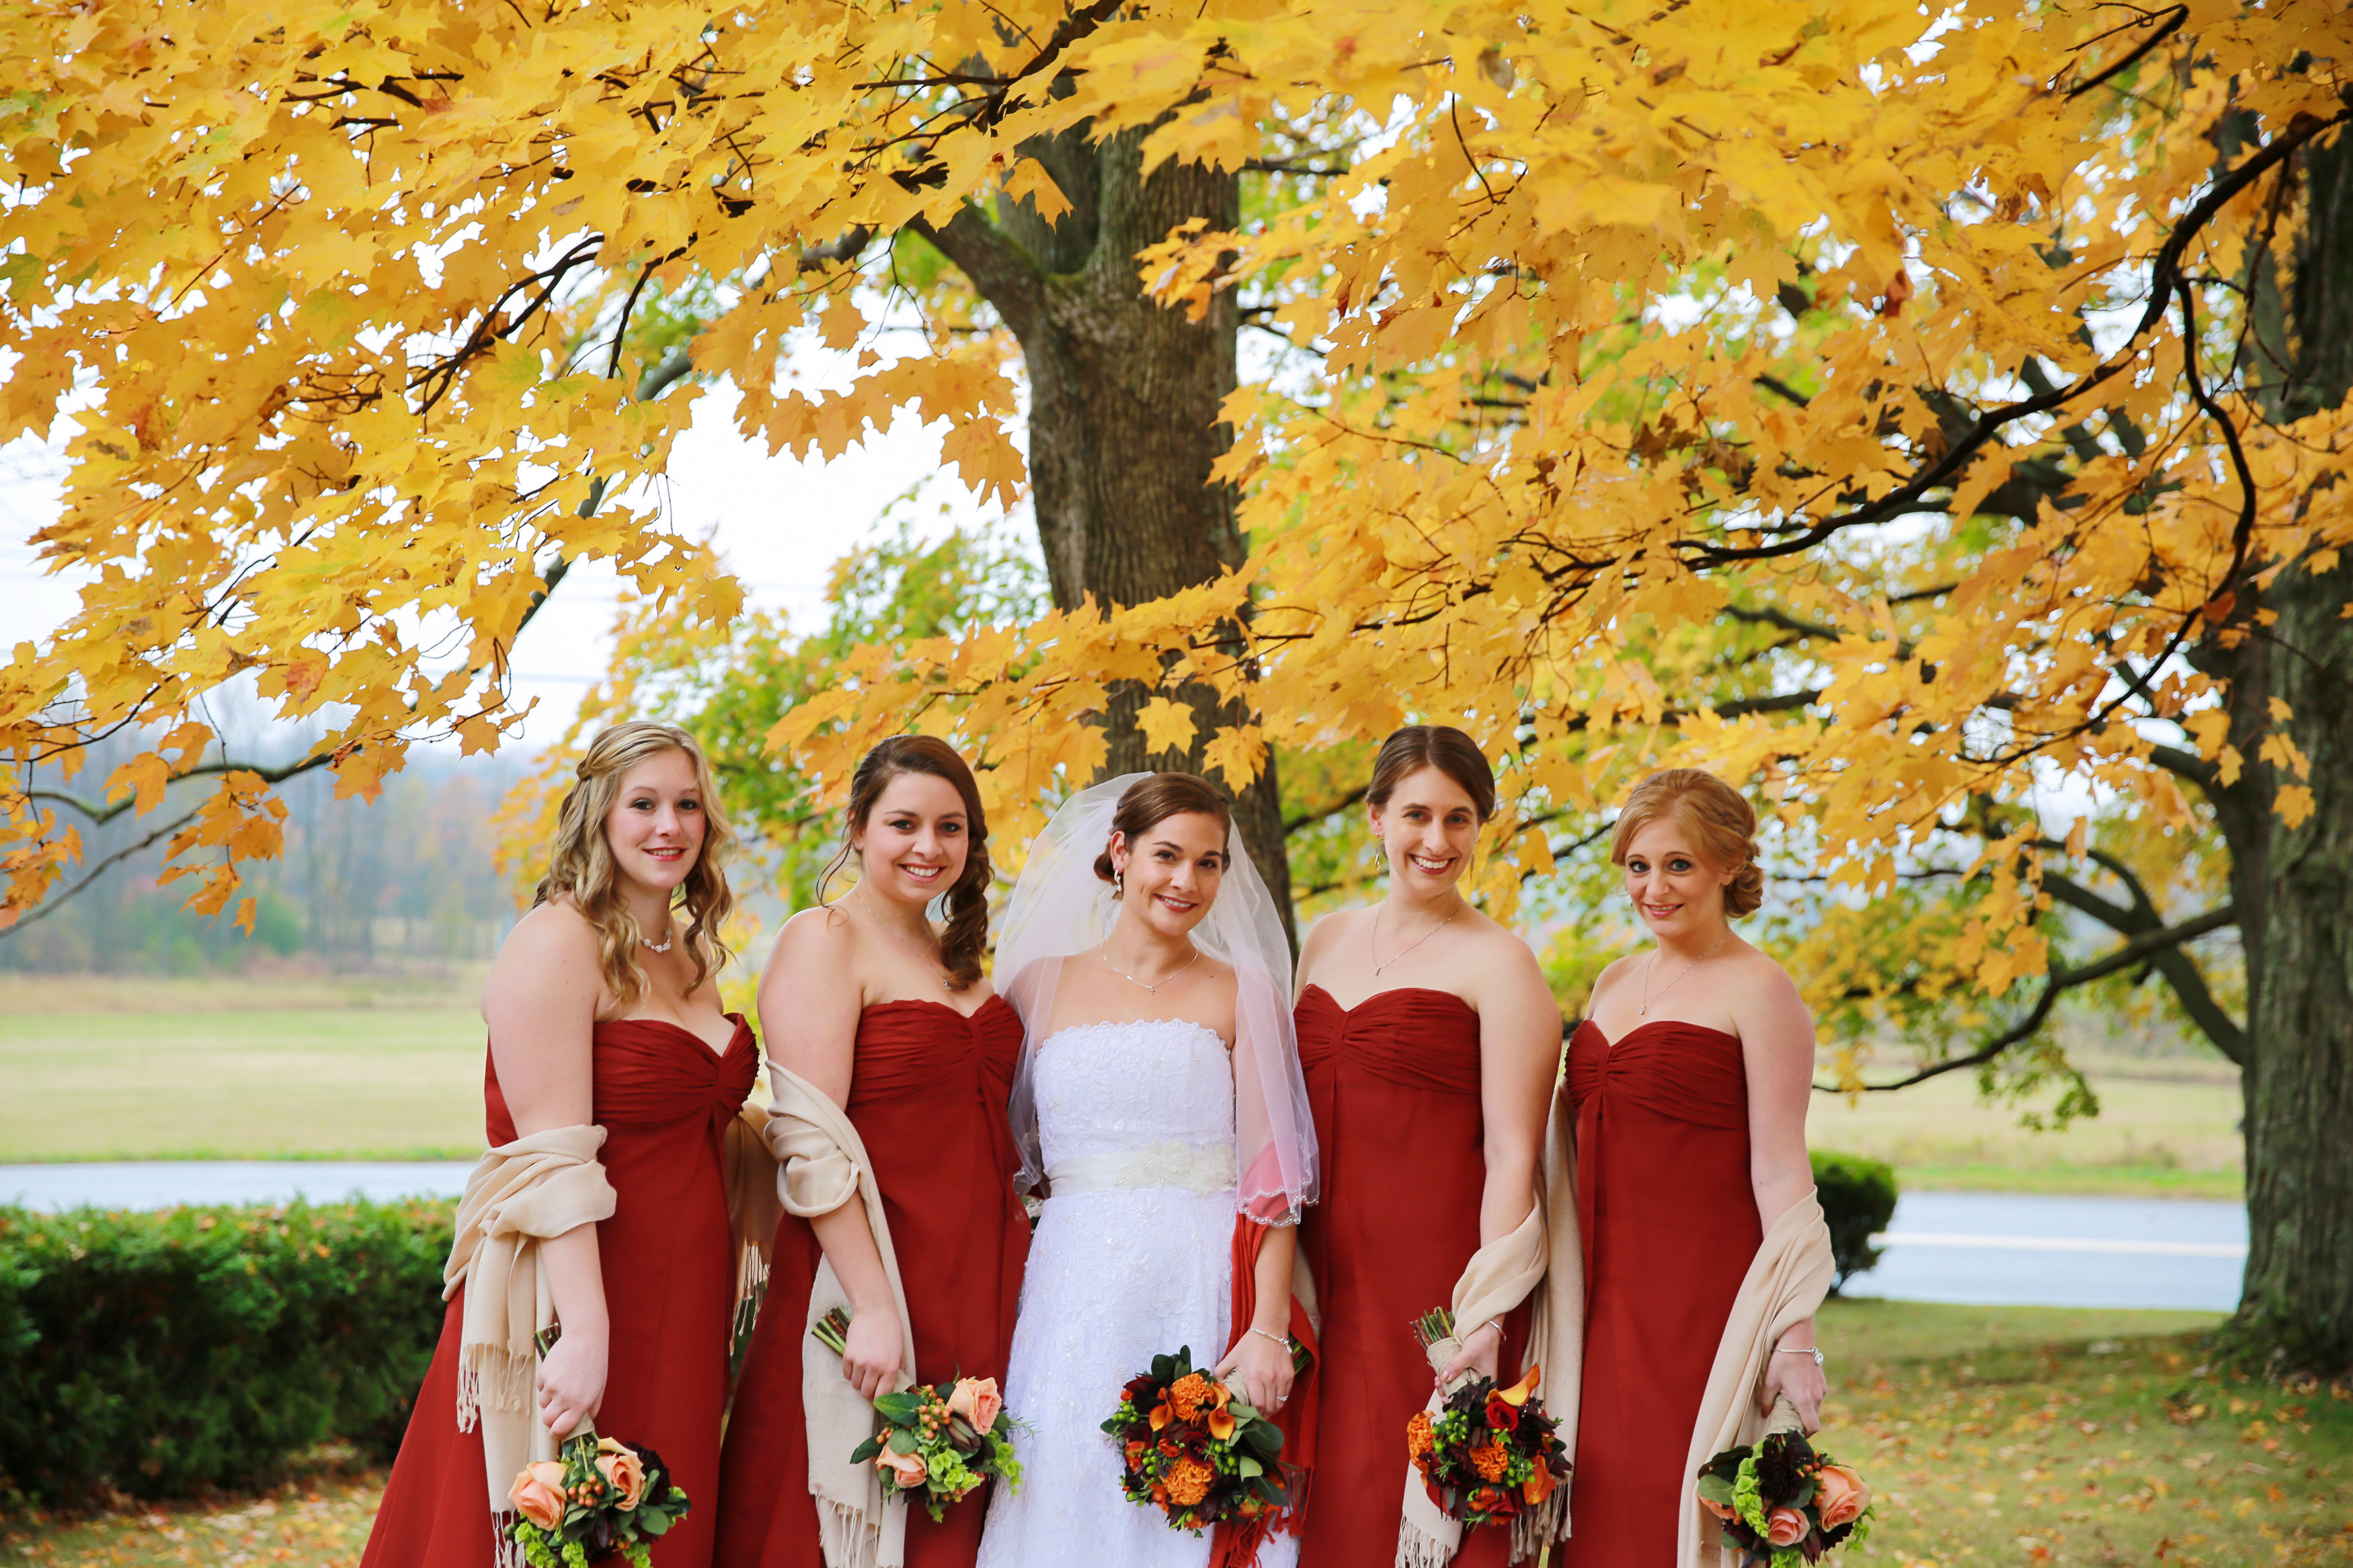 Nicole Ben Wedding October 18th 2014-Teaser Gallery-0017.jpg